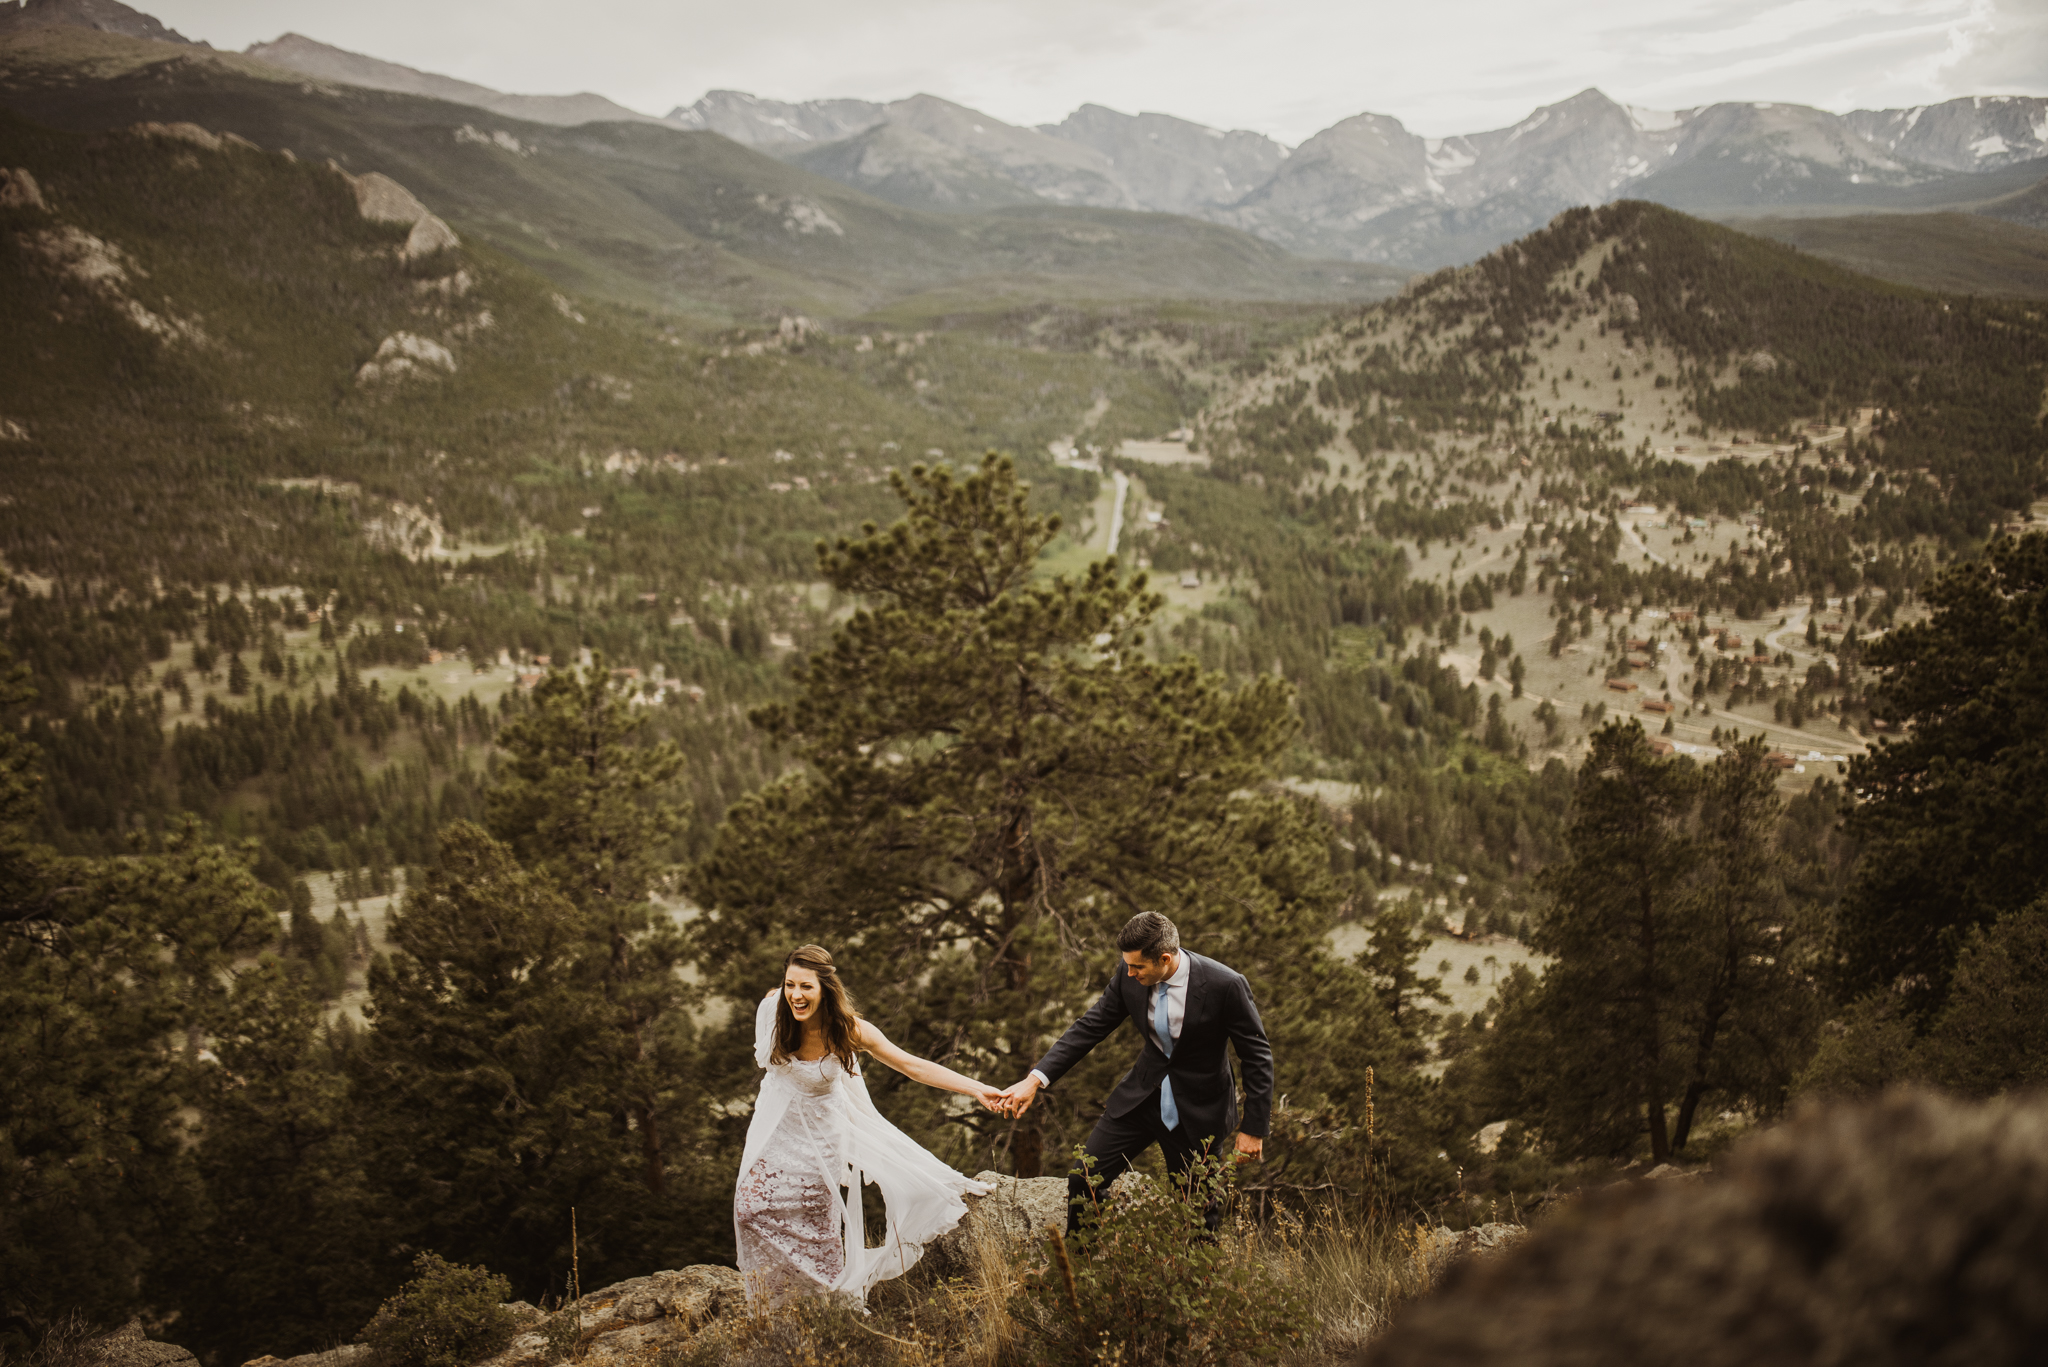 ©Isaiah + Taylor Photography - Estes National Park Adventure Elopement, Colorado Rockies-109.jpg